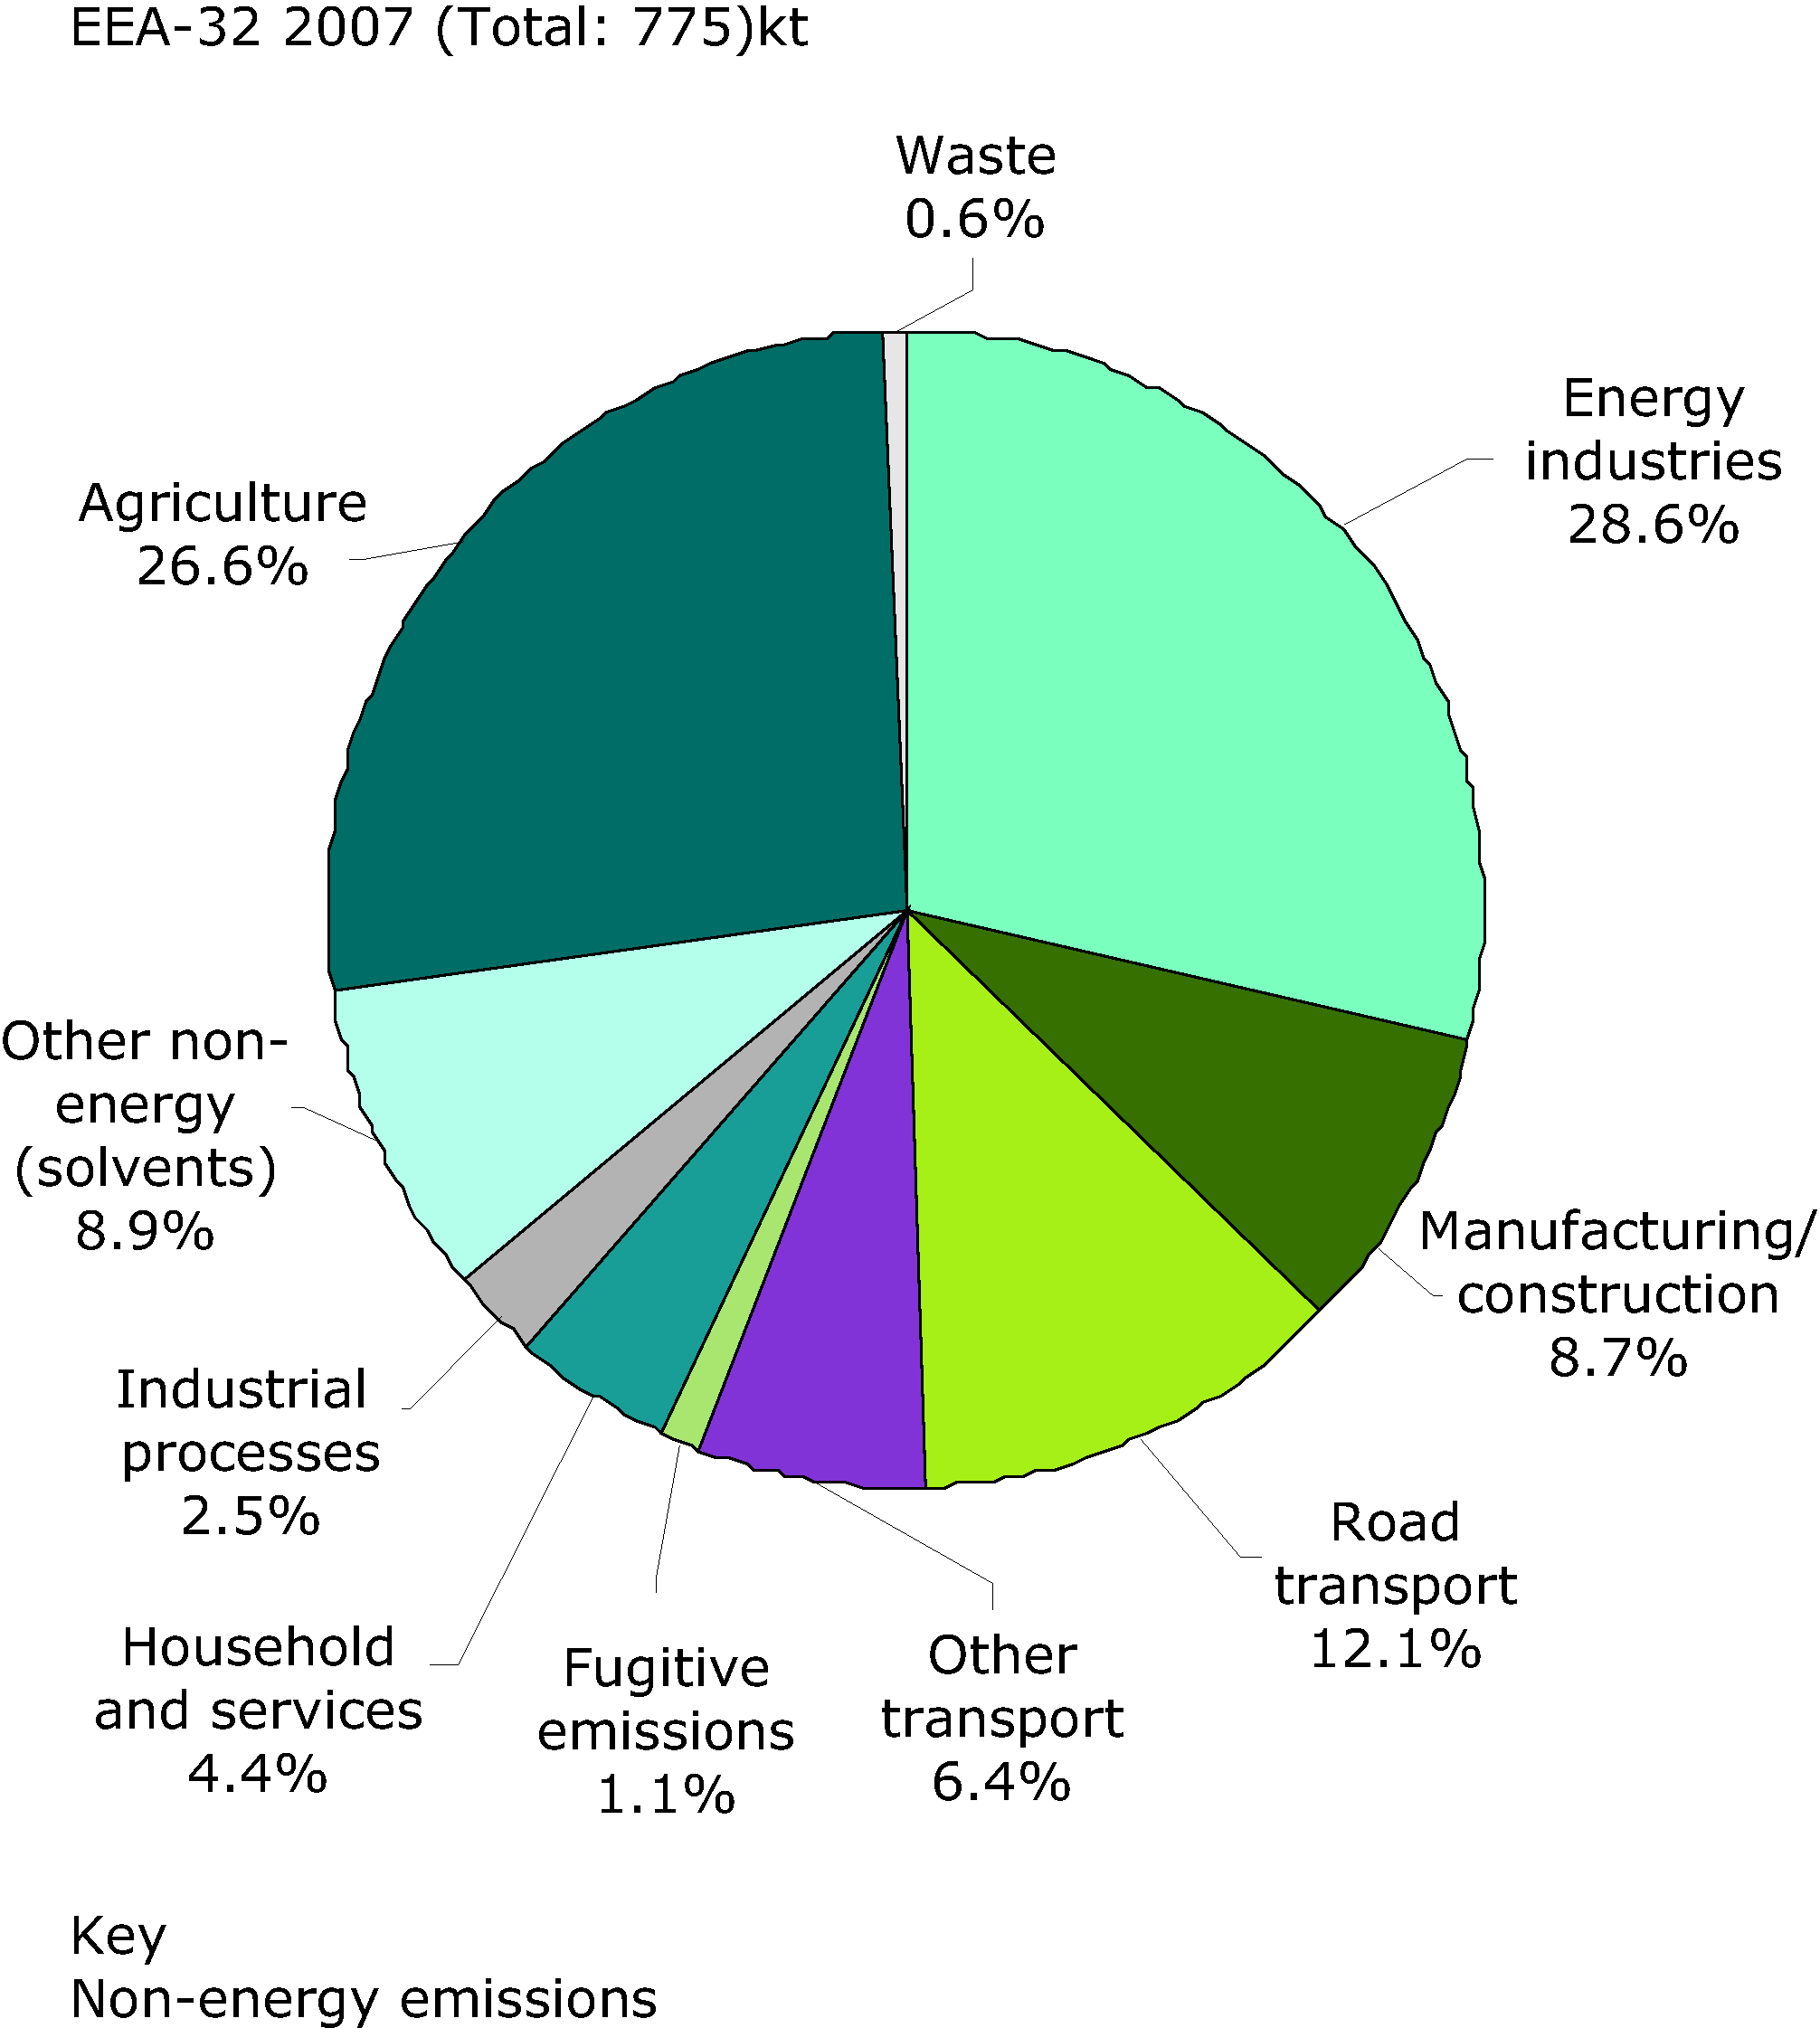 Sectoral shares of acidifying pollutants (SO2, NOx, NH3; energy and non-energy components) of total emissions, EEA-32. Values within the segments indicate the level of emissions (kt) emitted from each sector.